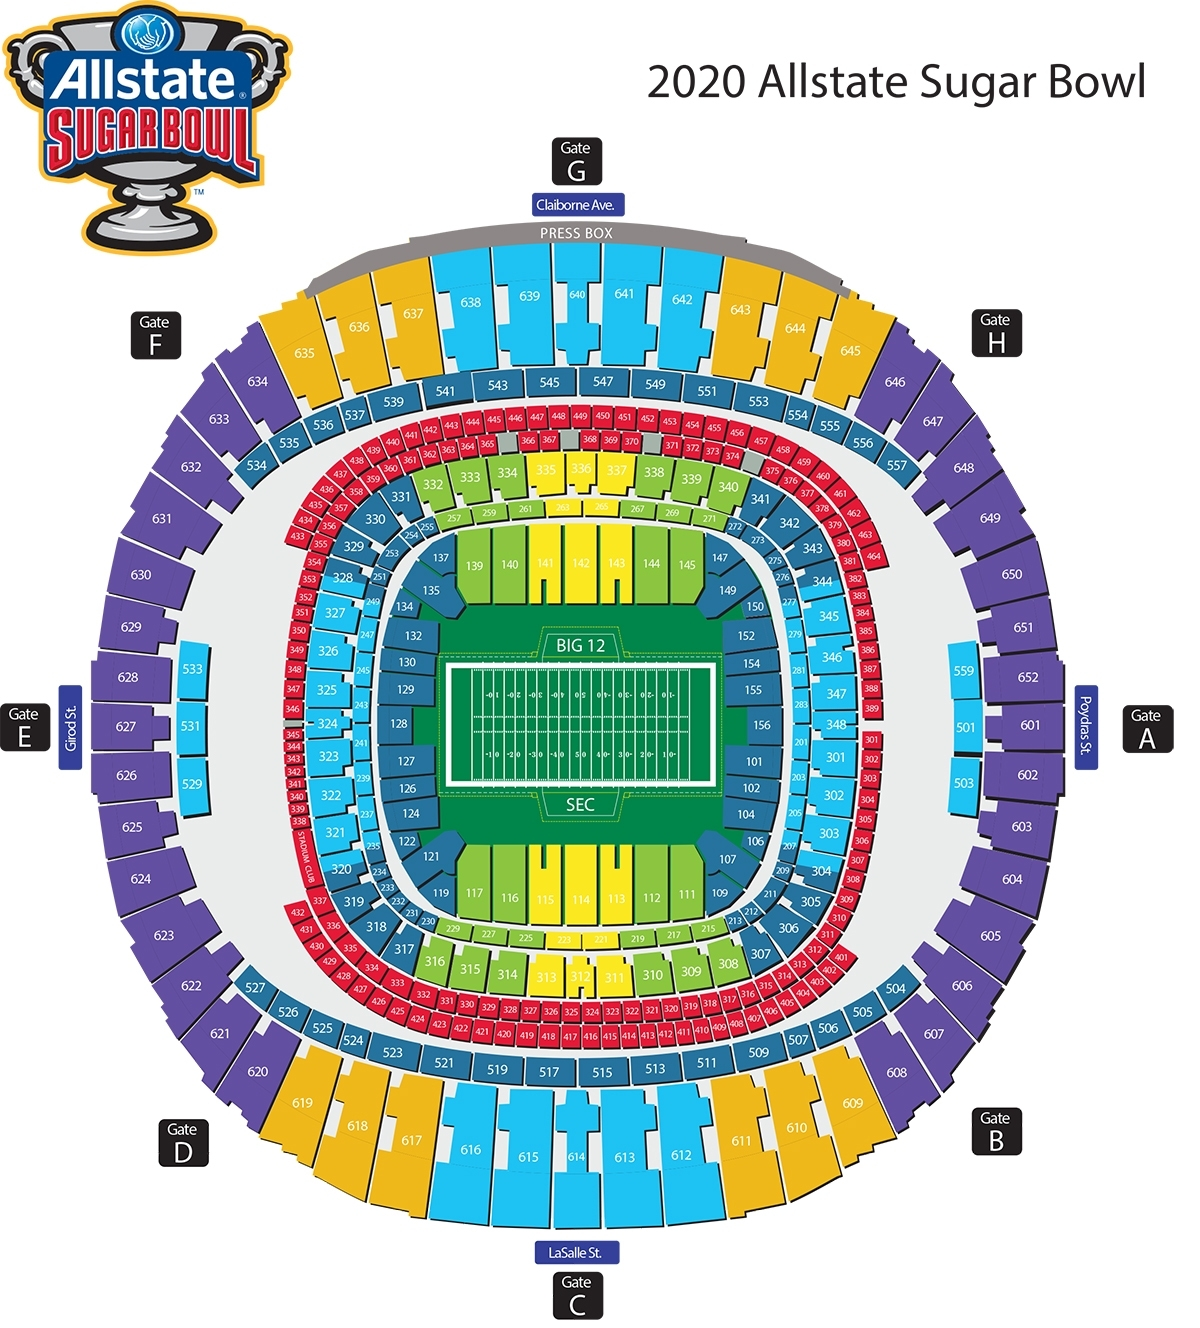 Seating Diagram - Official Site Of The Allstate Sugar Bowl with regard to Super Bowl Stadium Seating Chart